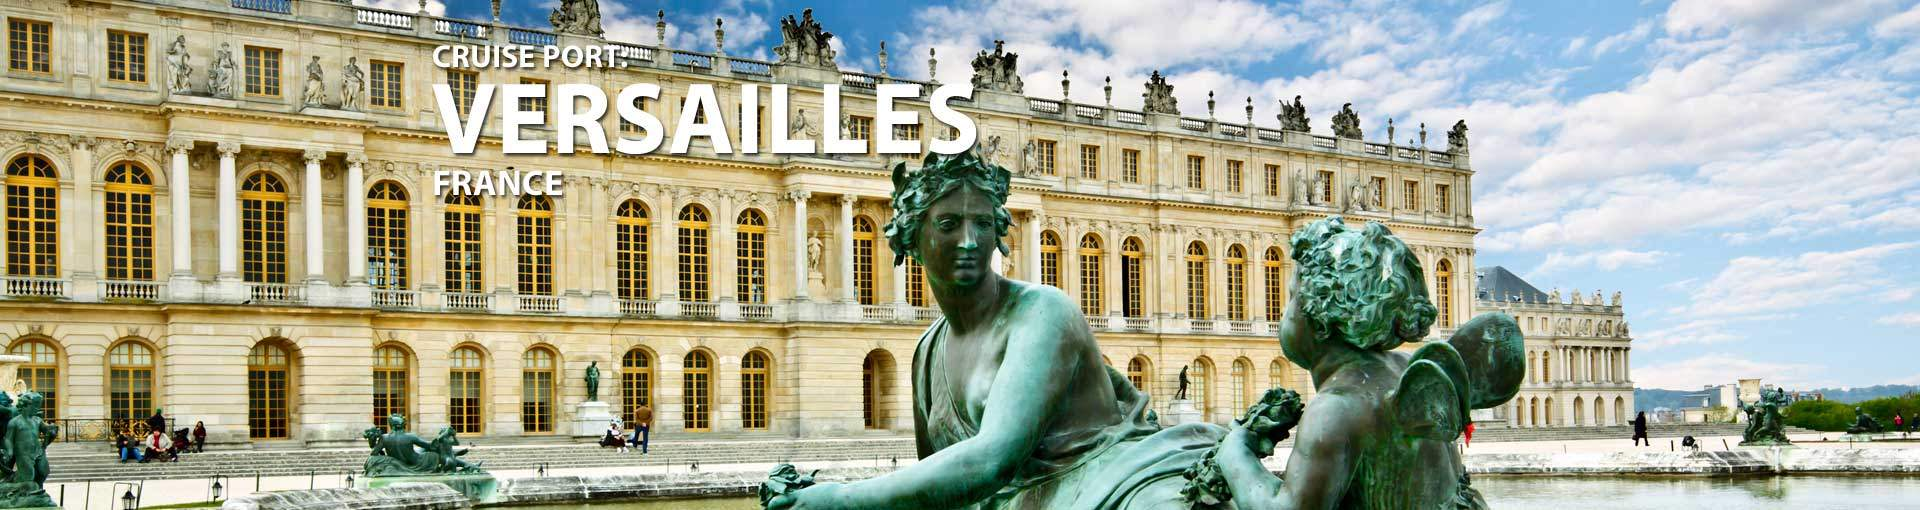 Cruises to Versailles, France